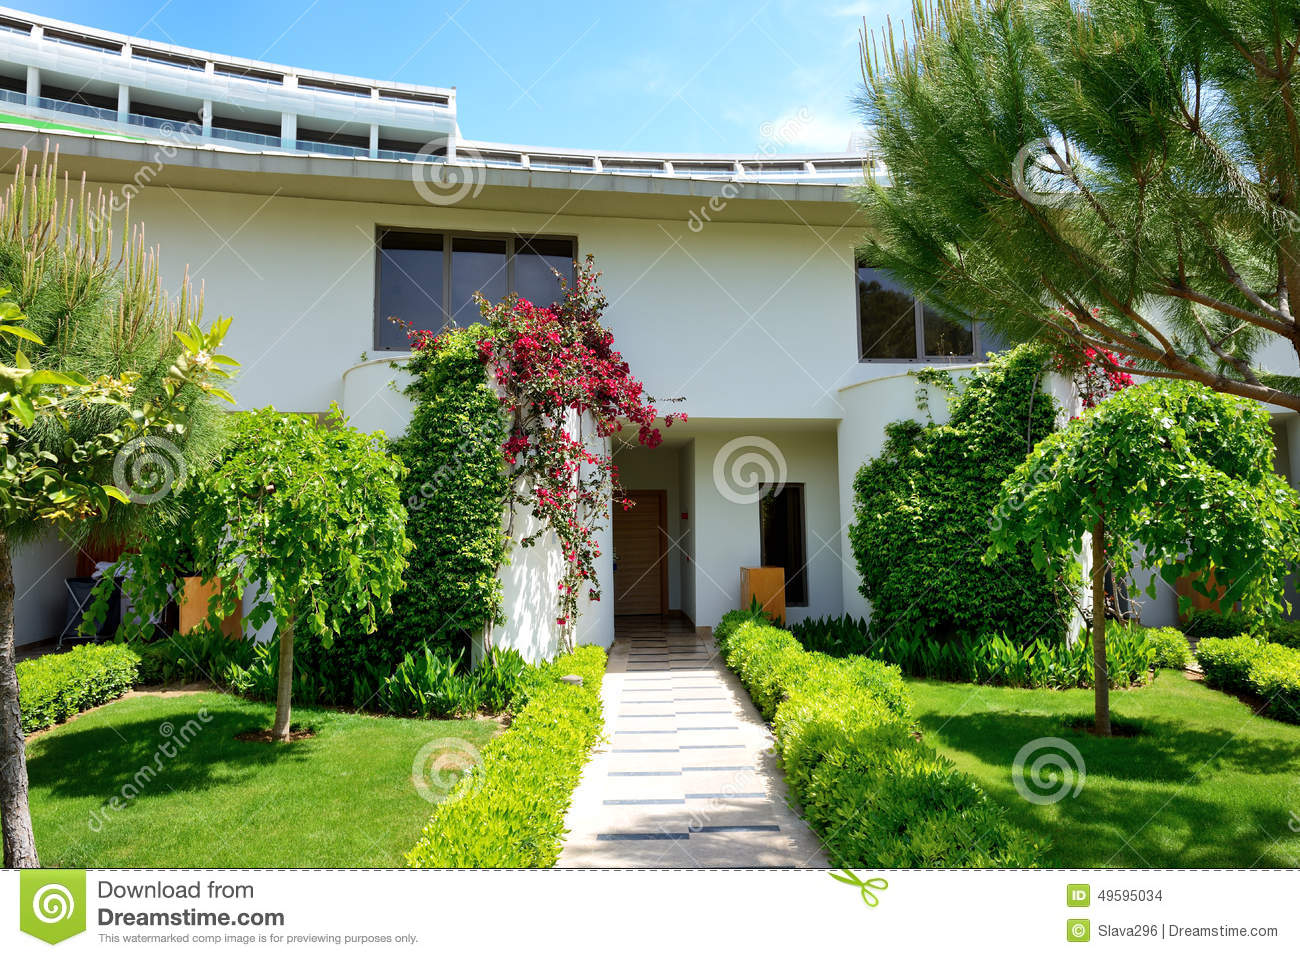 The lawn and building of luxury villa